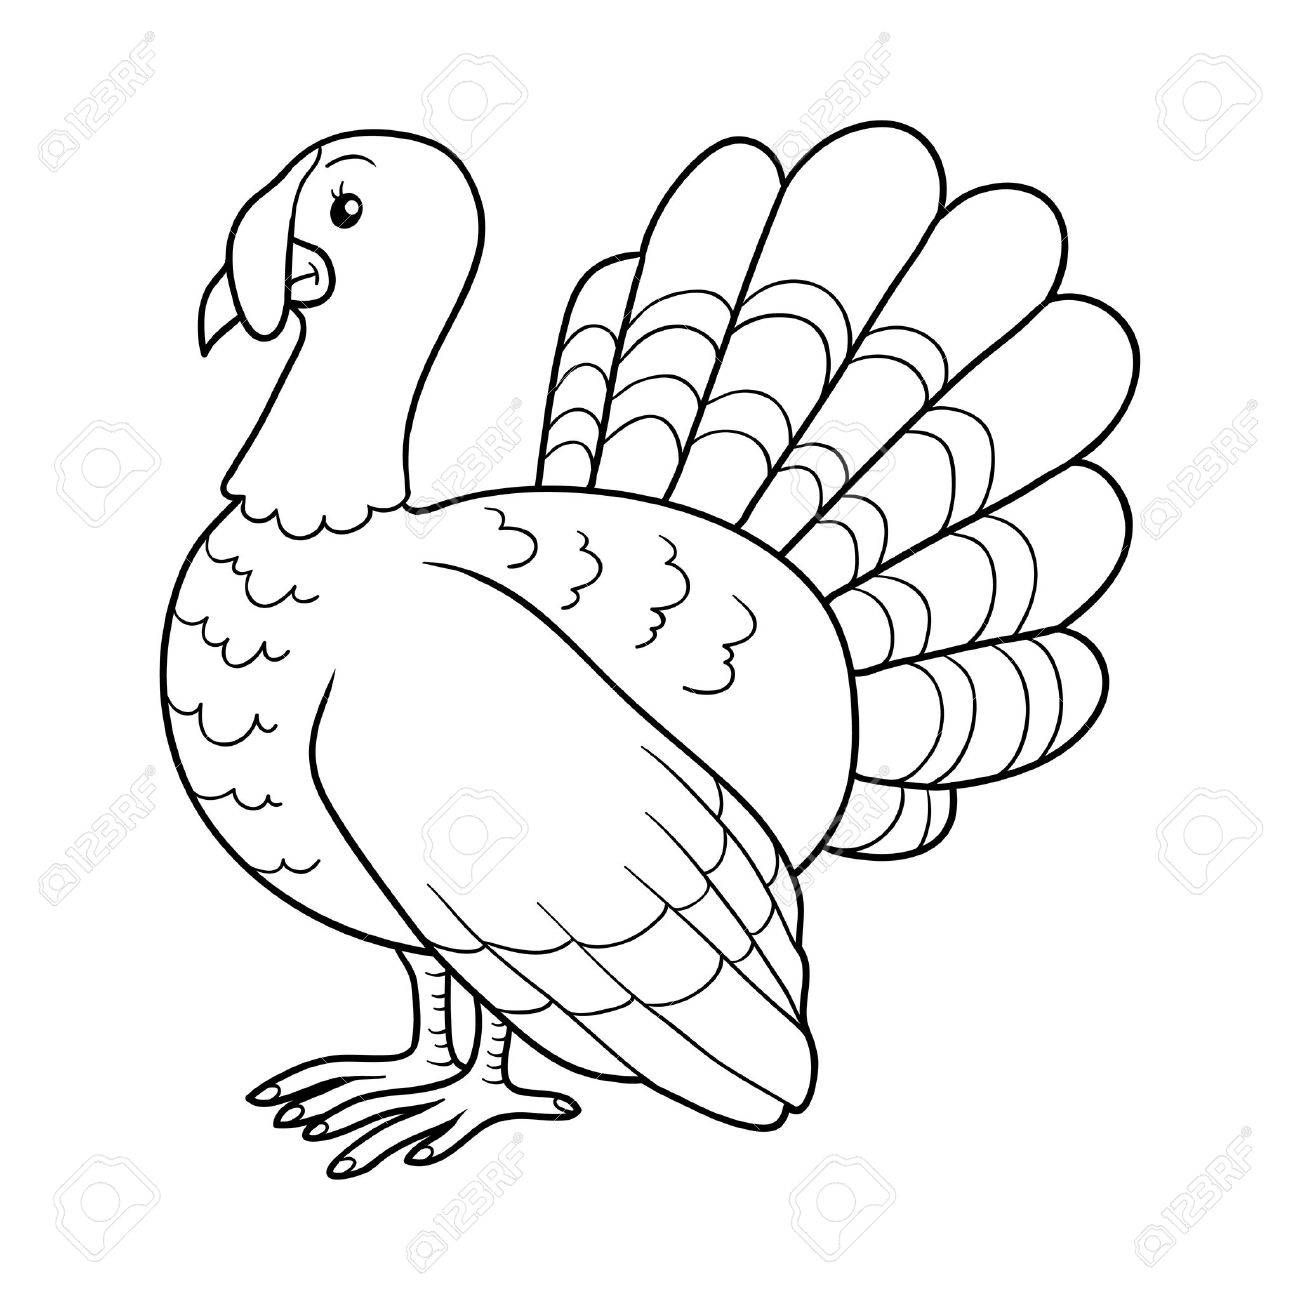 Game For Children: Coloring Book (turkey) Royalty Free Cliparts ...